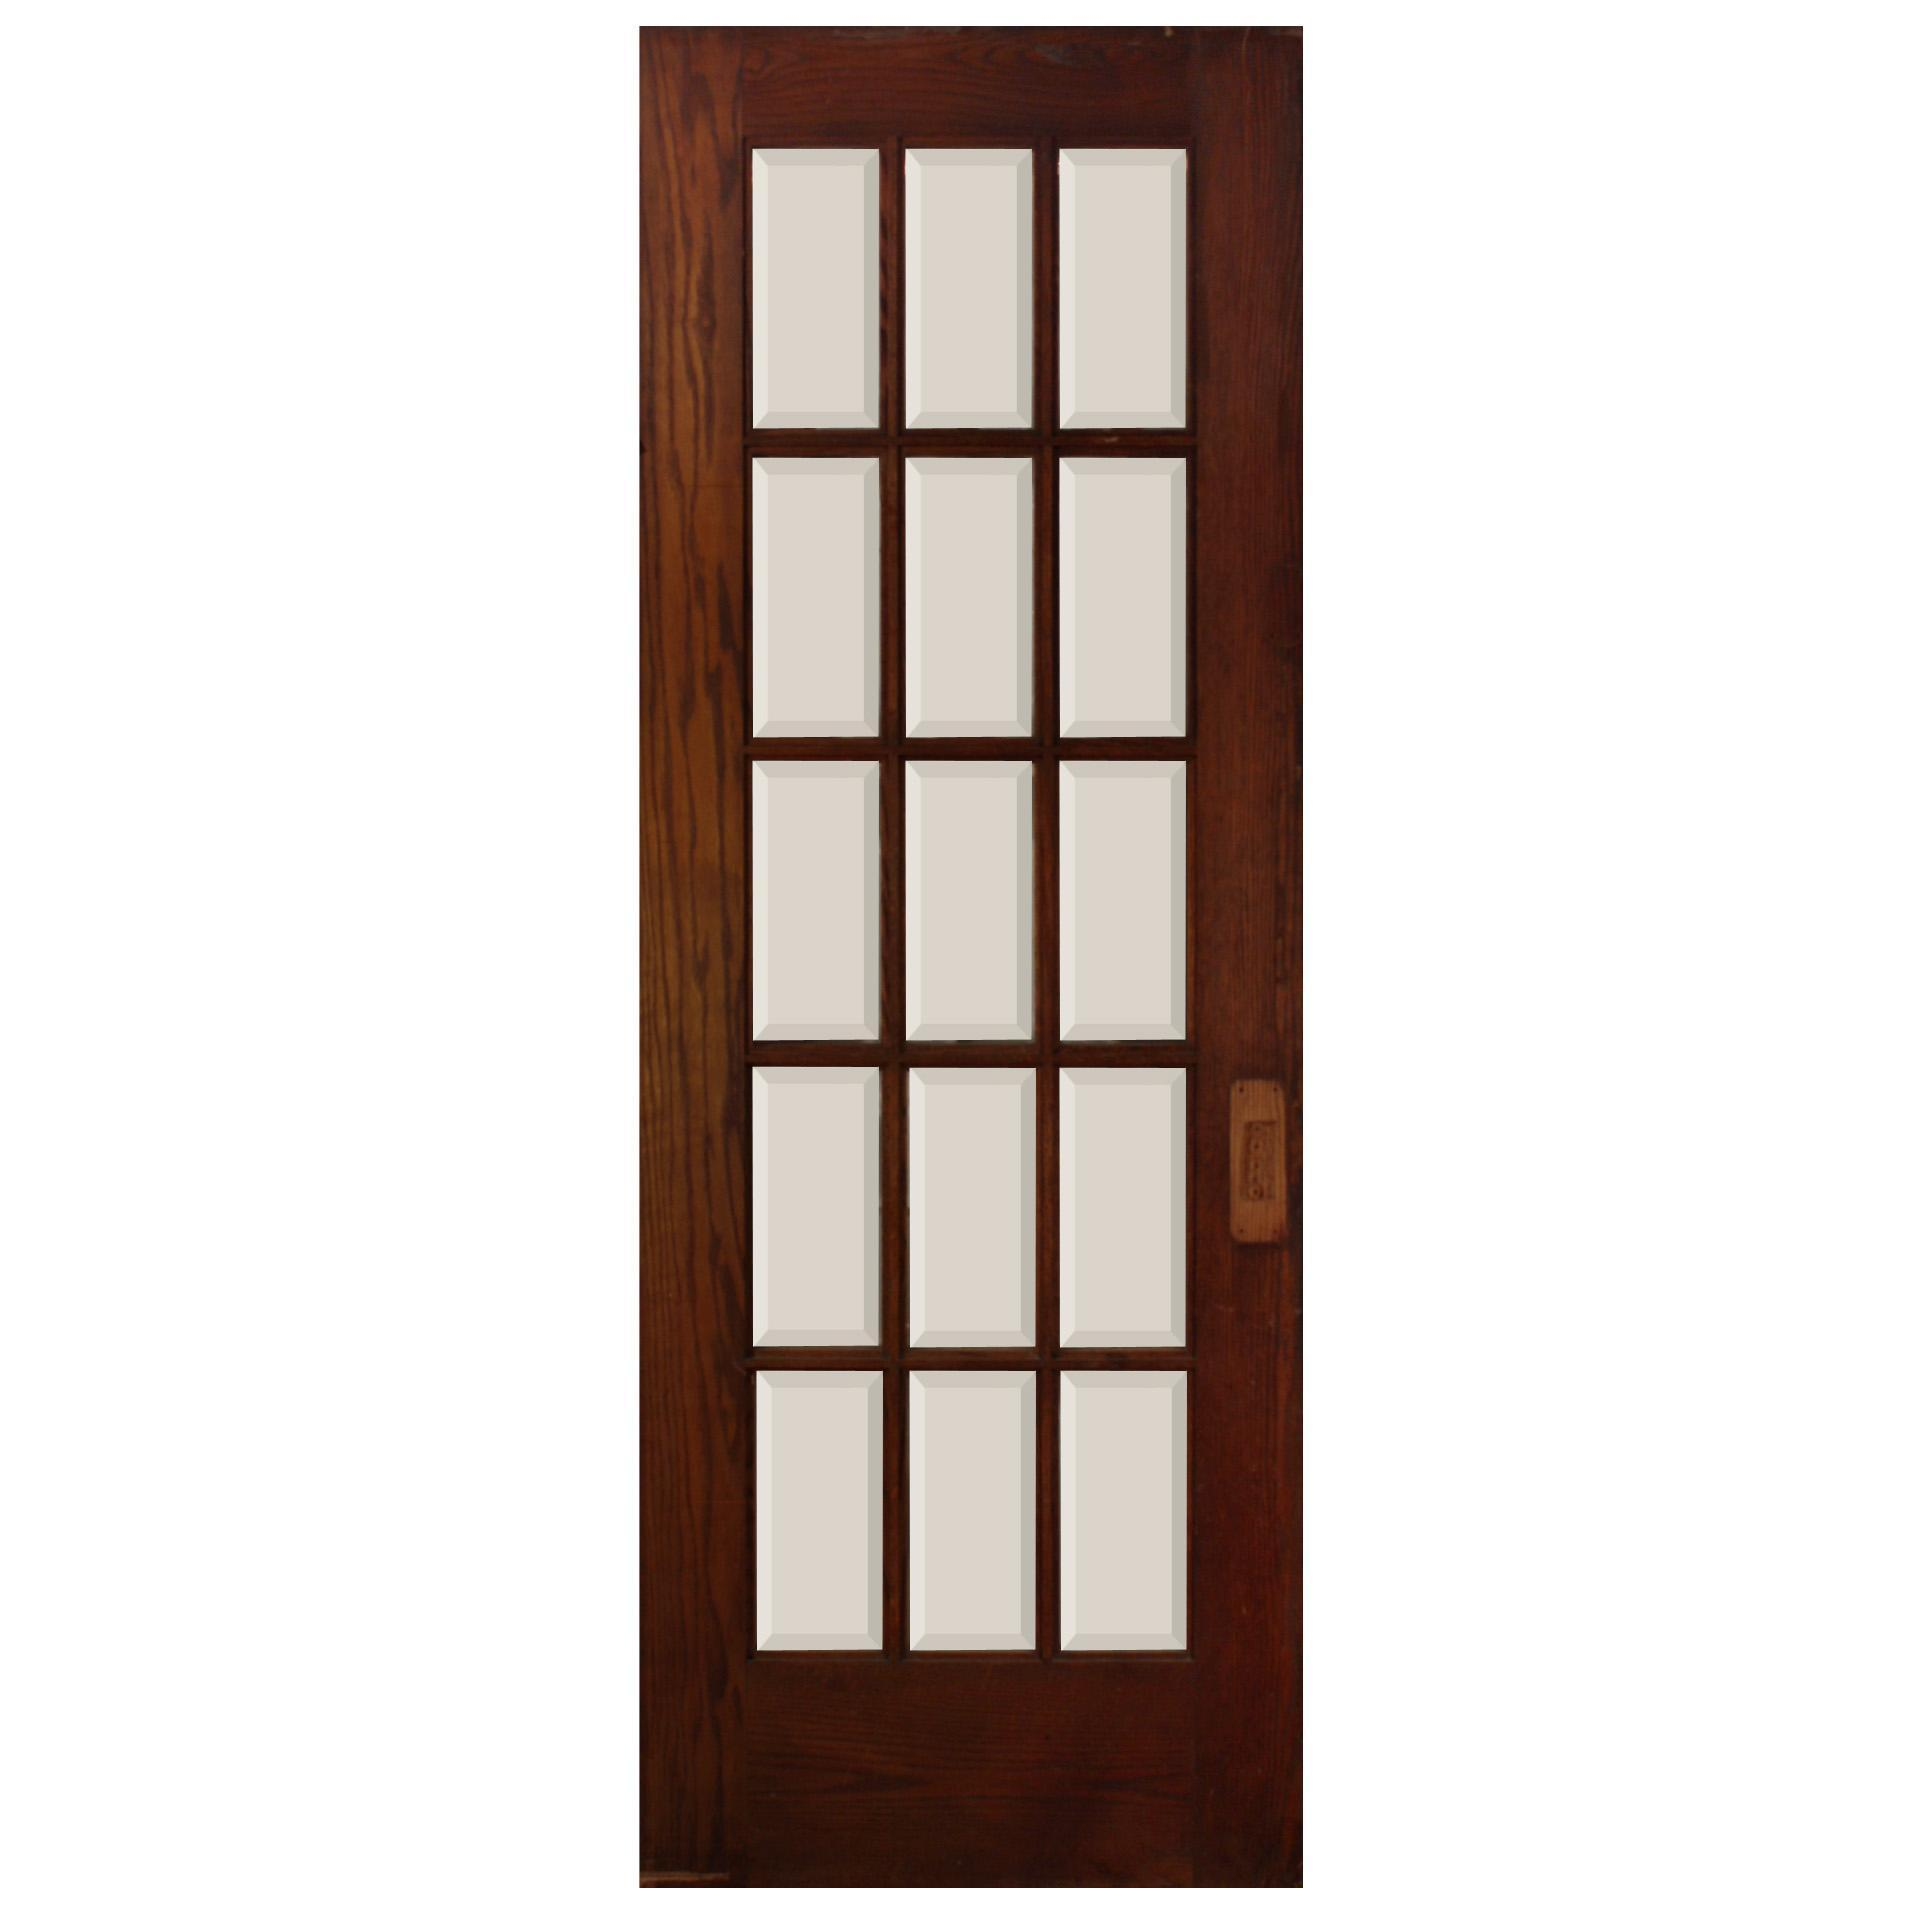 "Reclaimed 30"" Divided Light Oak Door, Beveled Glass"